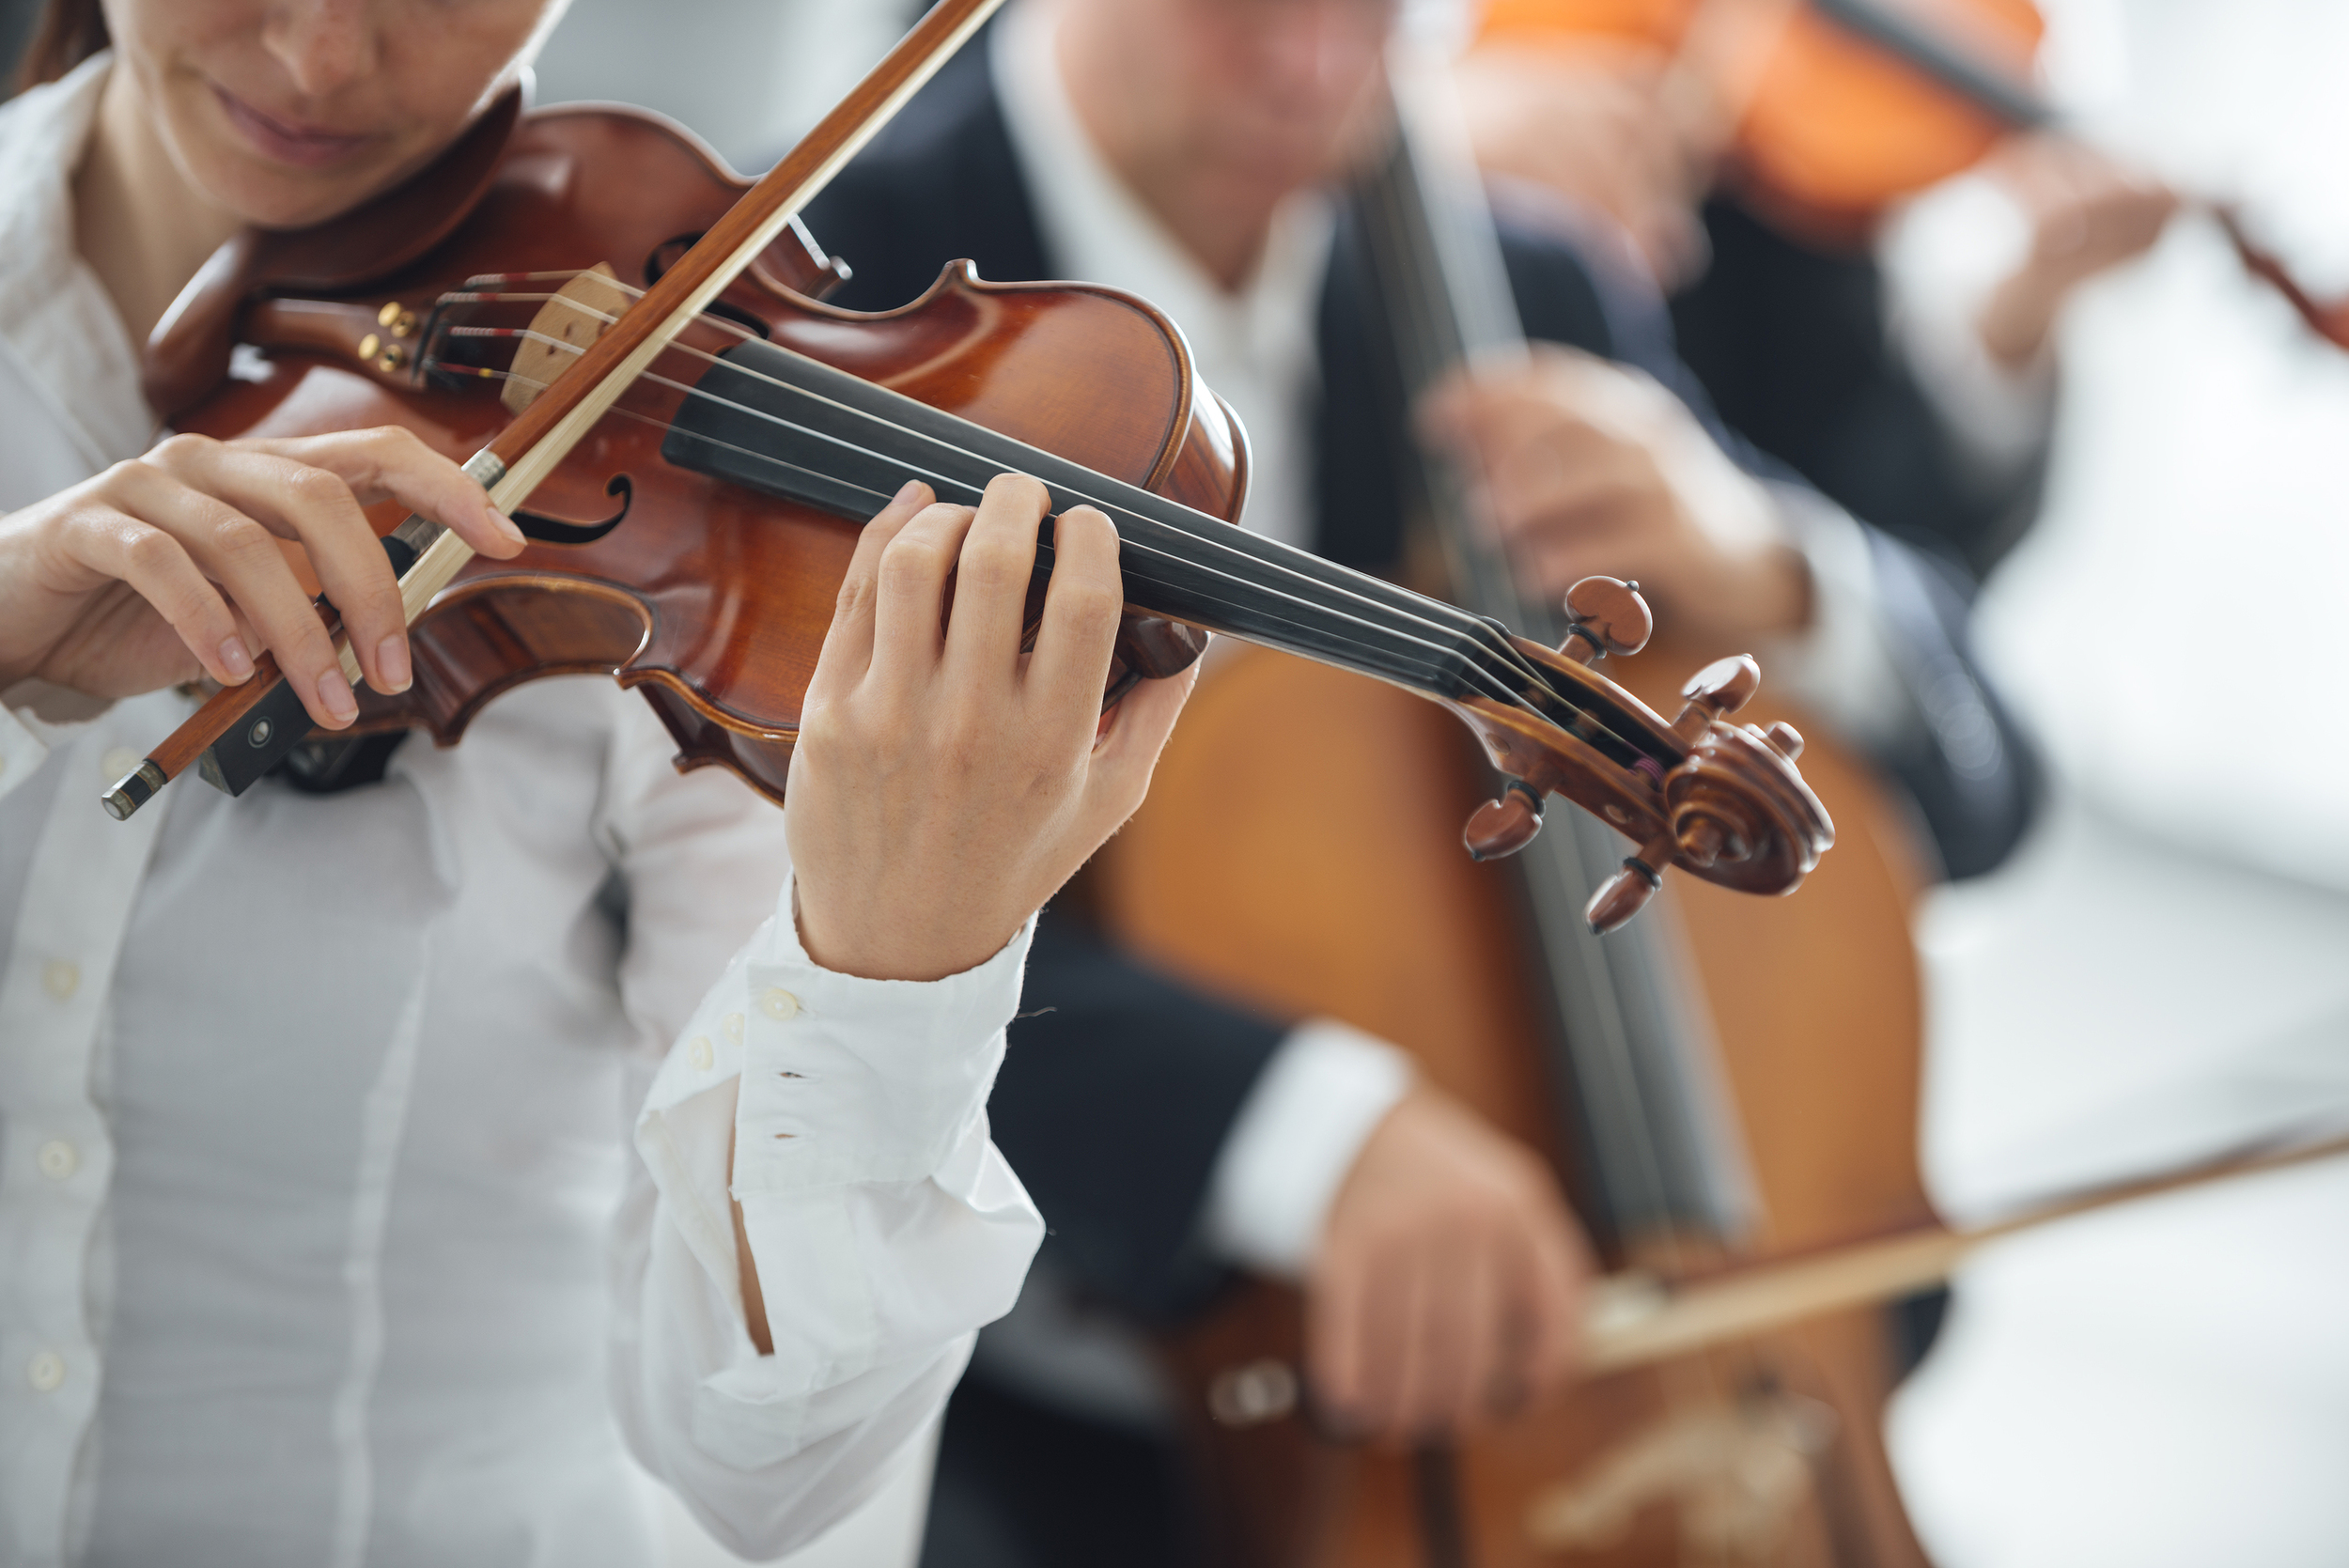 bigstock-Violinist-Performing-With-Orch-138576167.jpg